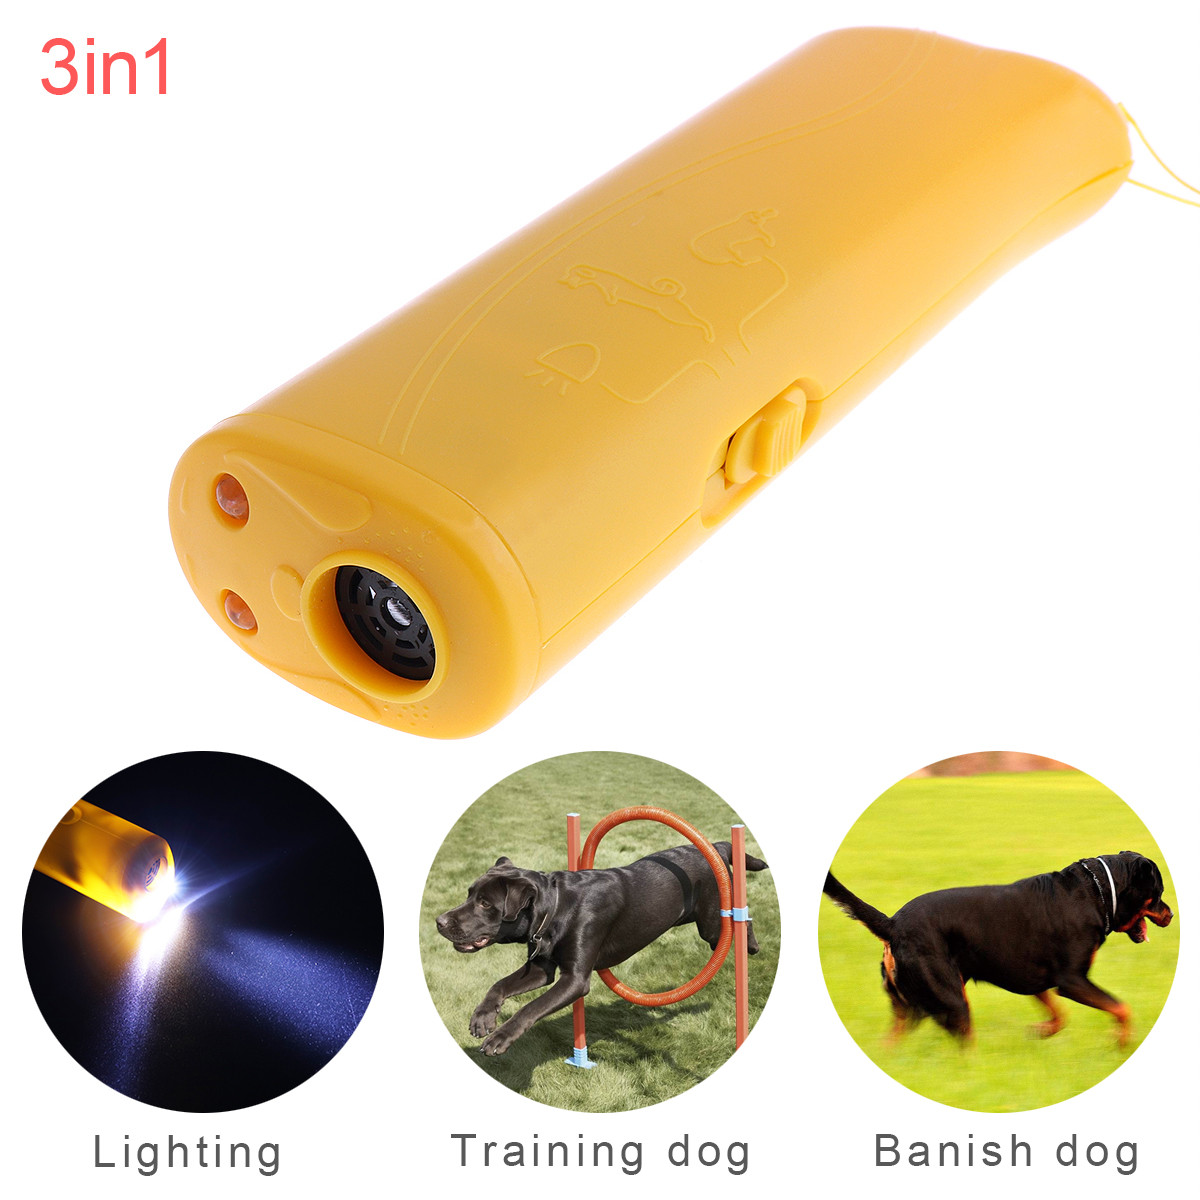 Ultrasonic LED Dog Repeller Trainer Pet Dog Rumbling Equipment Flashlight Torch with 3 Modes for Training Drive Dog Flash Light genuine leather heavy duty design men travel casual backpack daypack fashion knapsack college school book laptop bag male 1170c